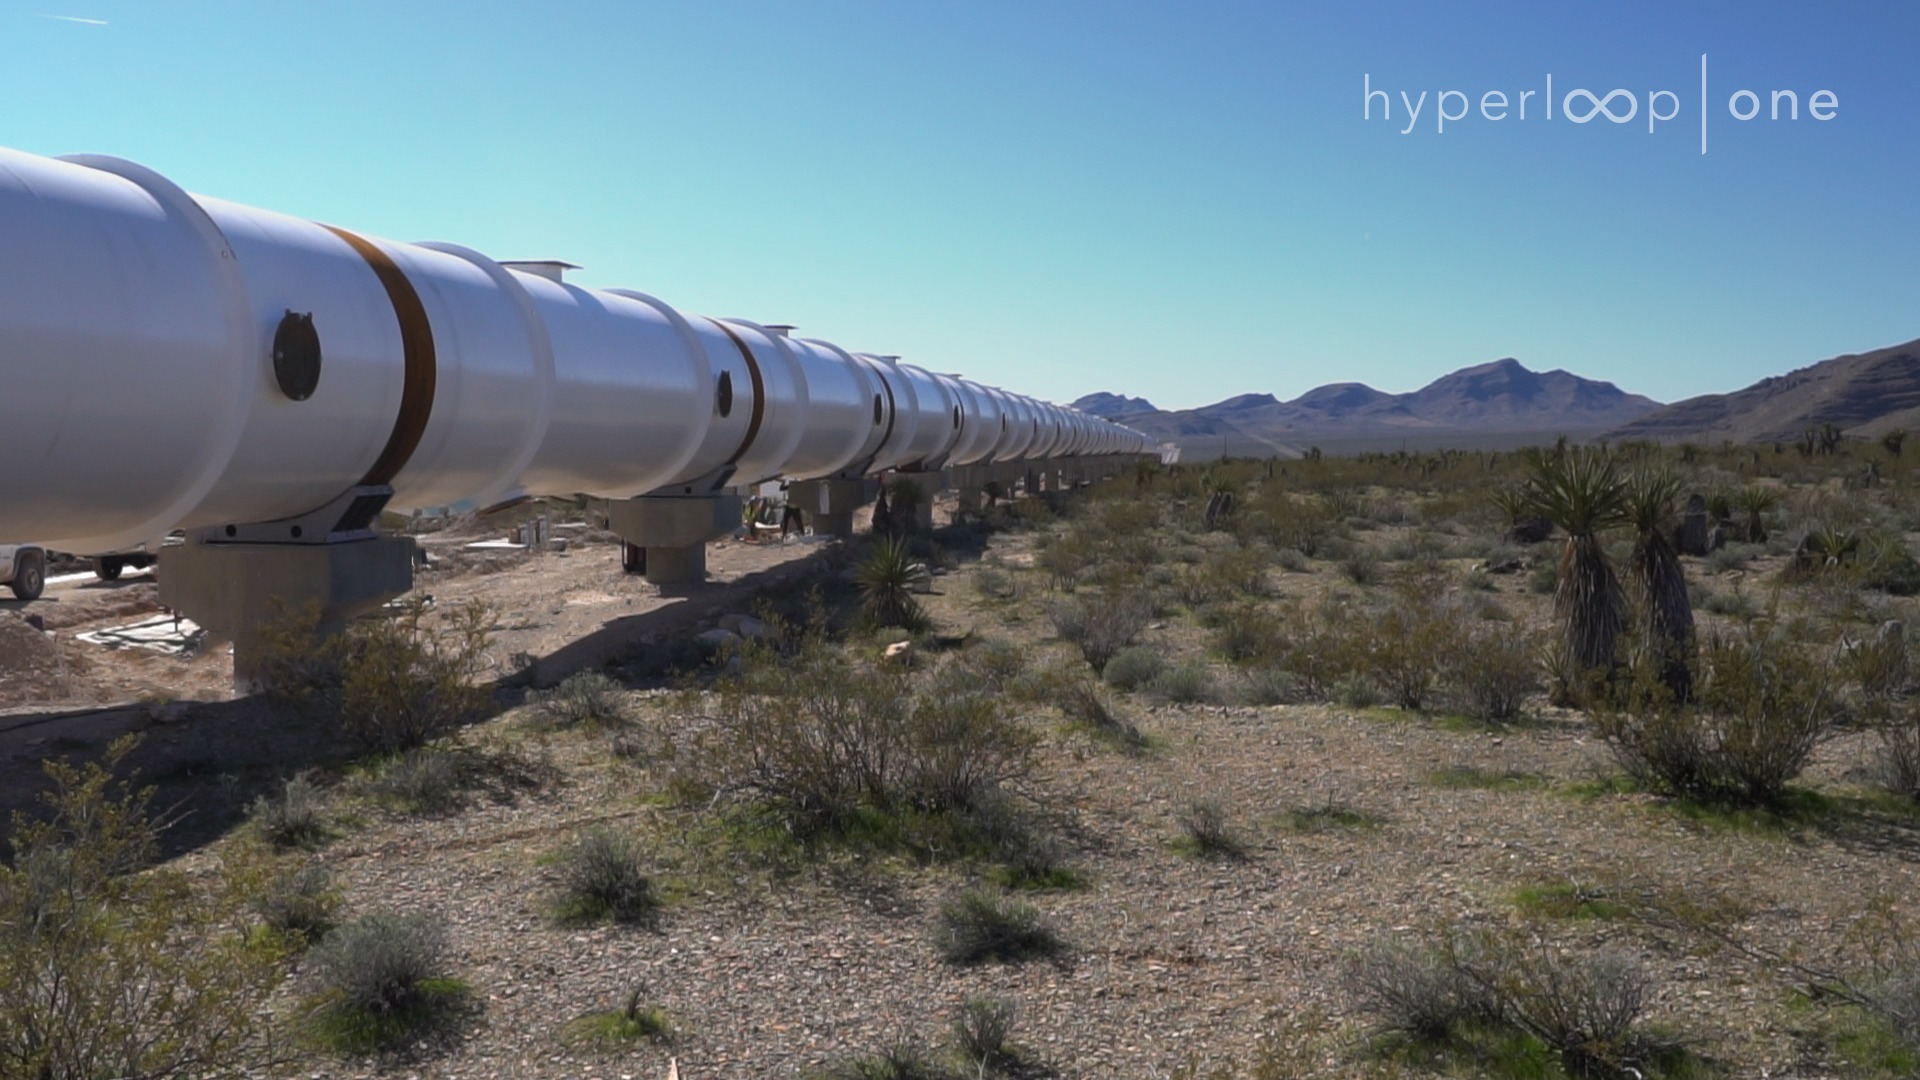 Richard Branson invierte en la tecnología de Hyperloop